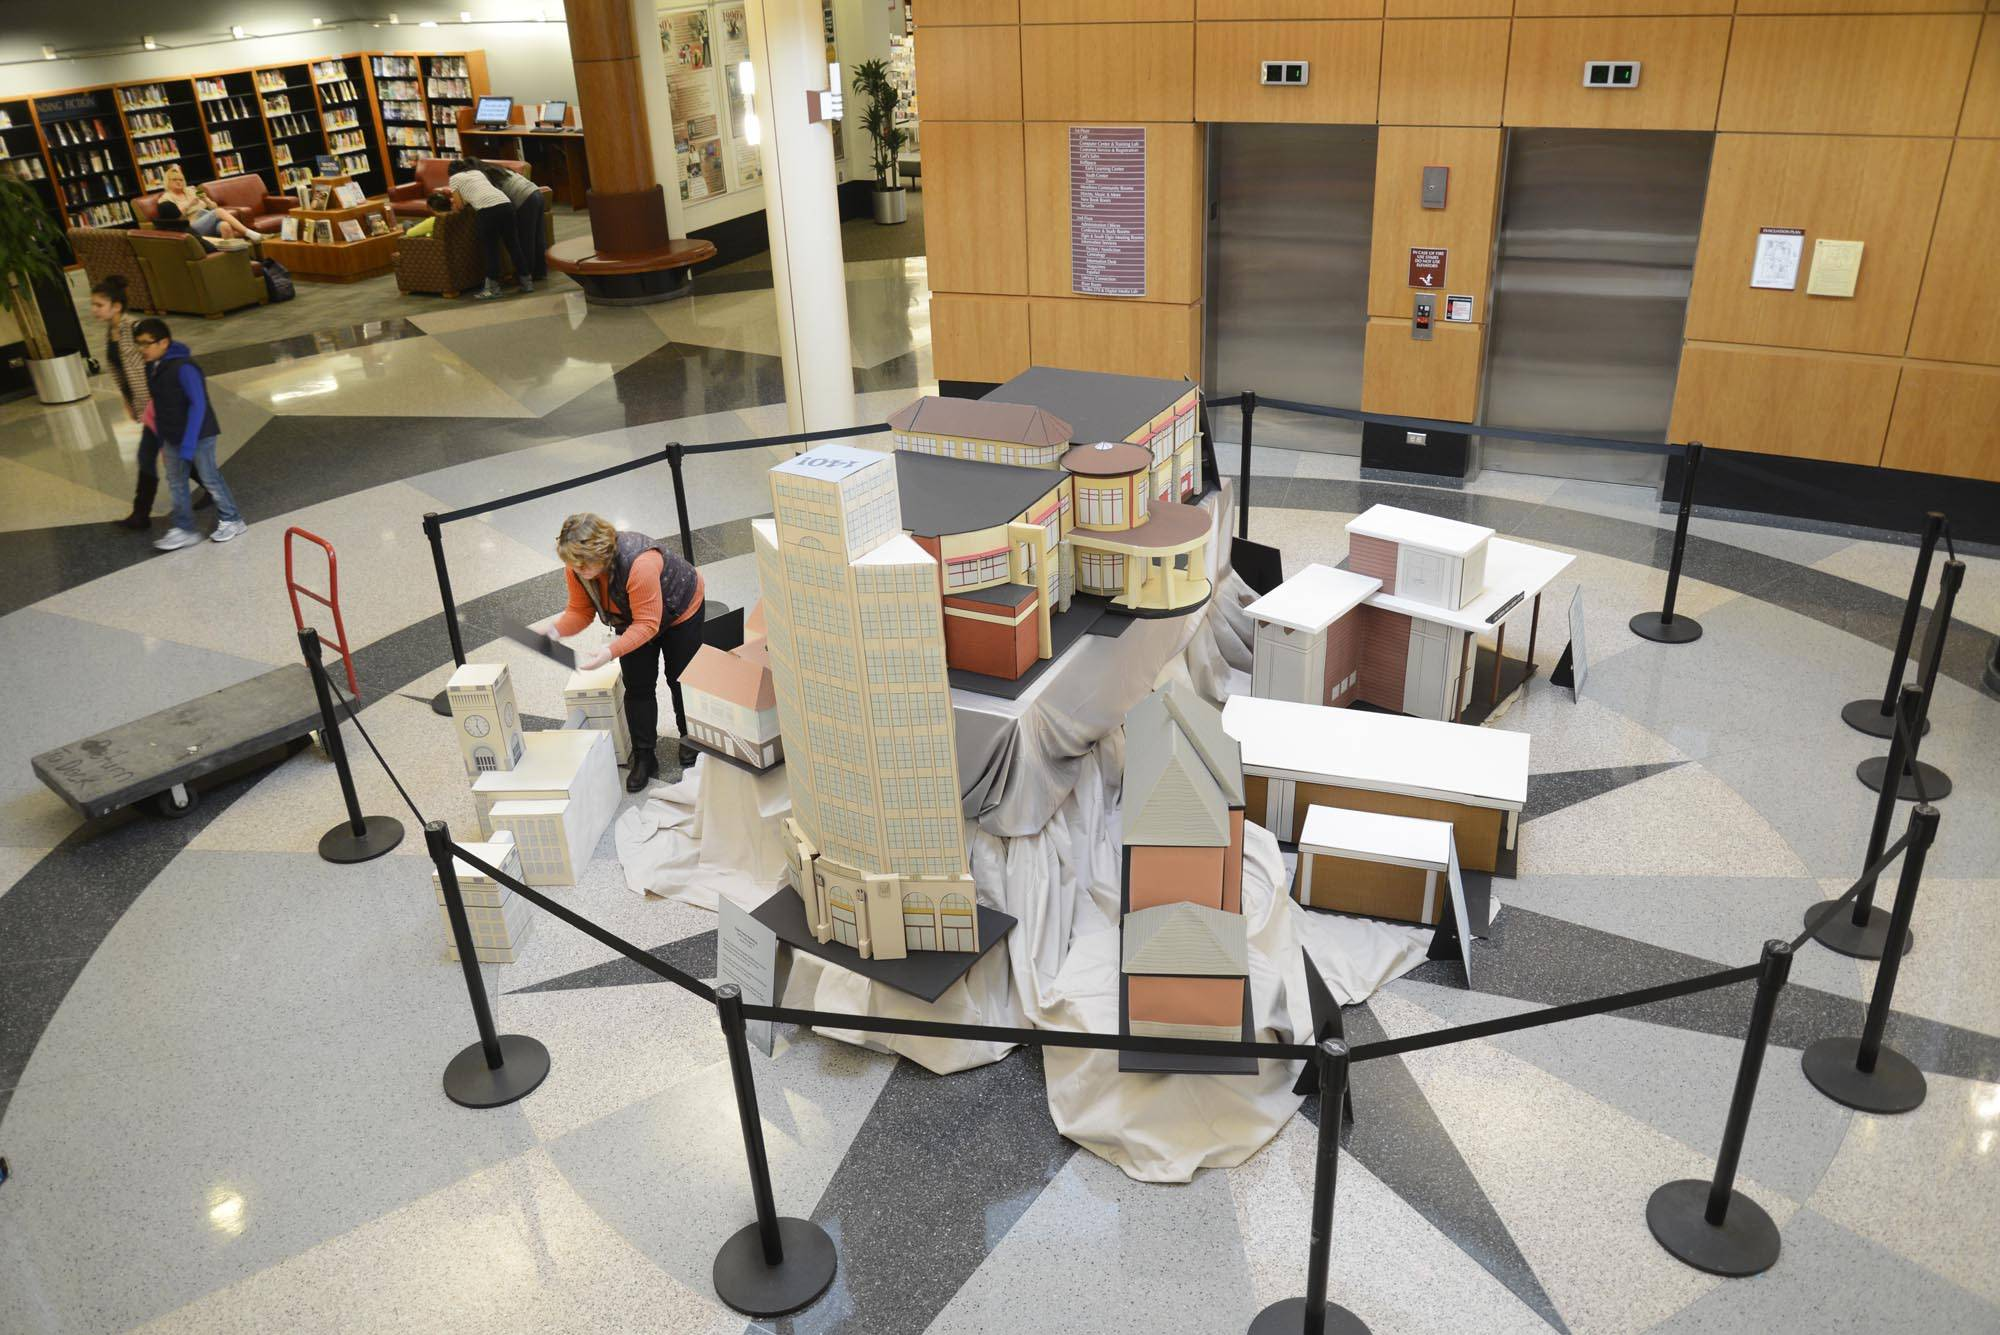 Mary Amici-Kozi sets up a large display of iconic Elgin buildings in the lobby area of the Gail Borden Public Library. She works in the creative services department as a graphic artist.